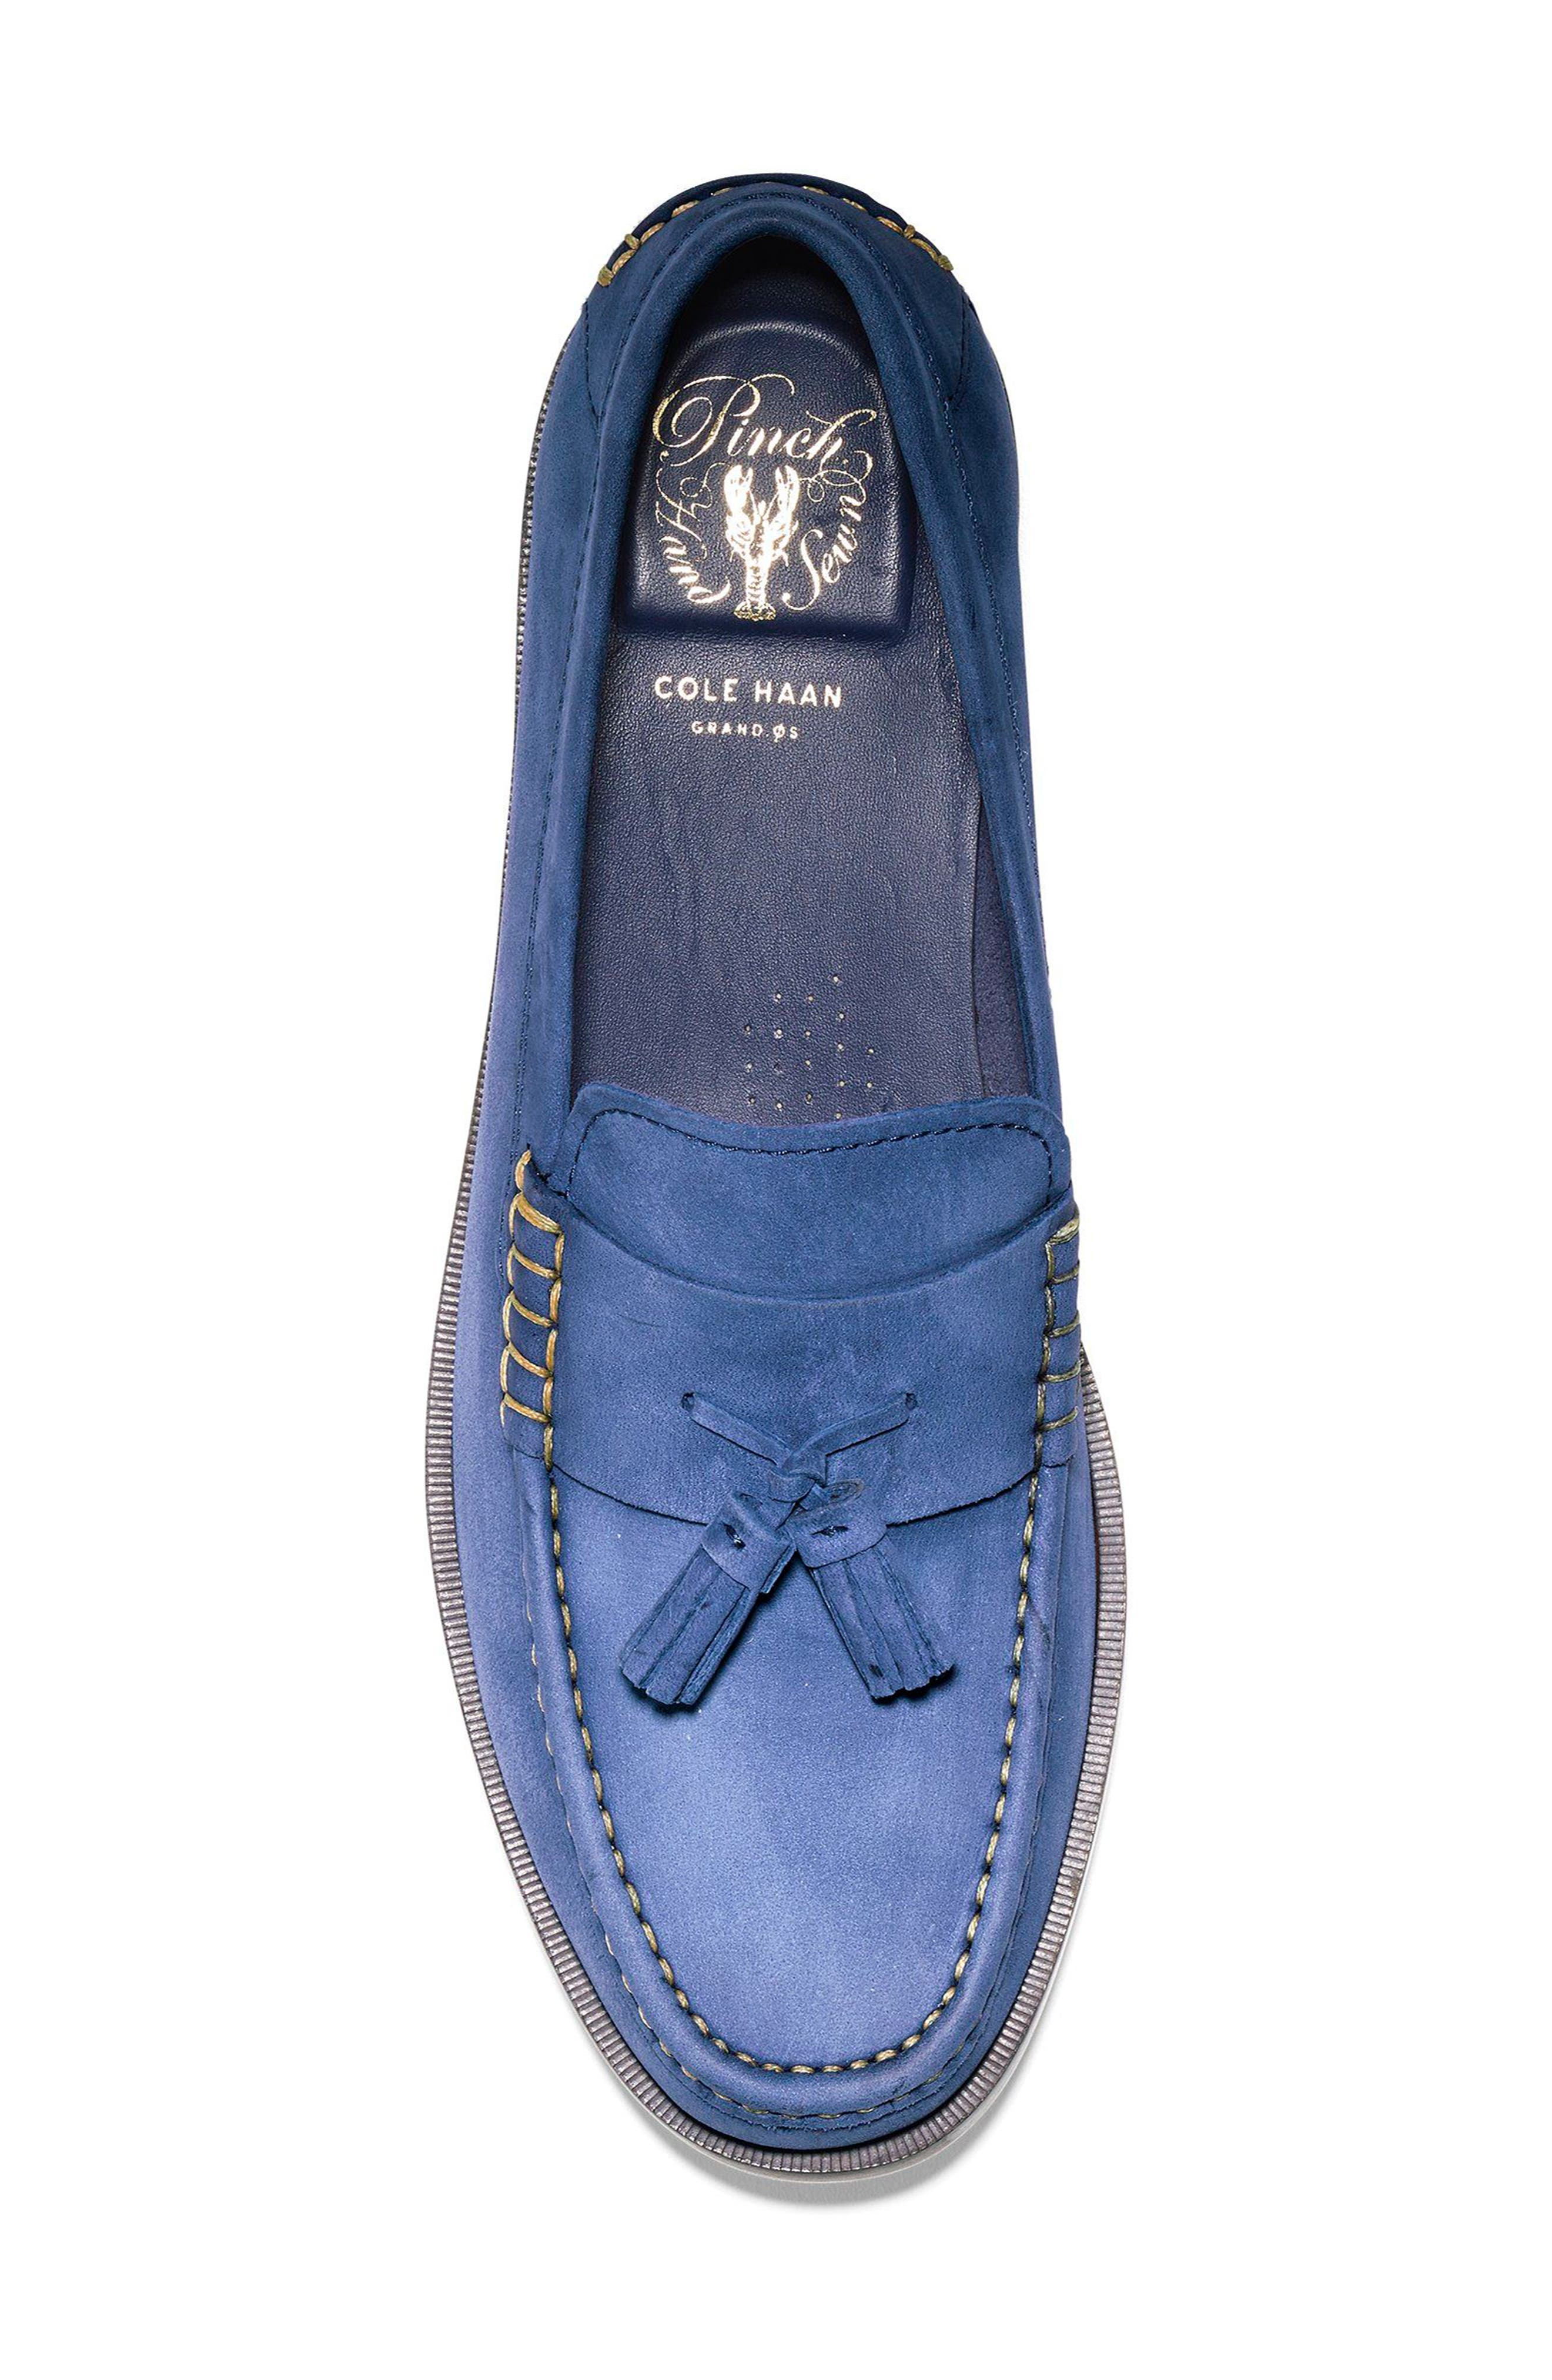 Pinch Friday Tassel Loafer,                             Alternate thumbnail 5, color,                             400